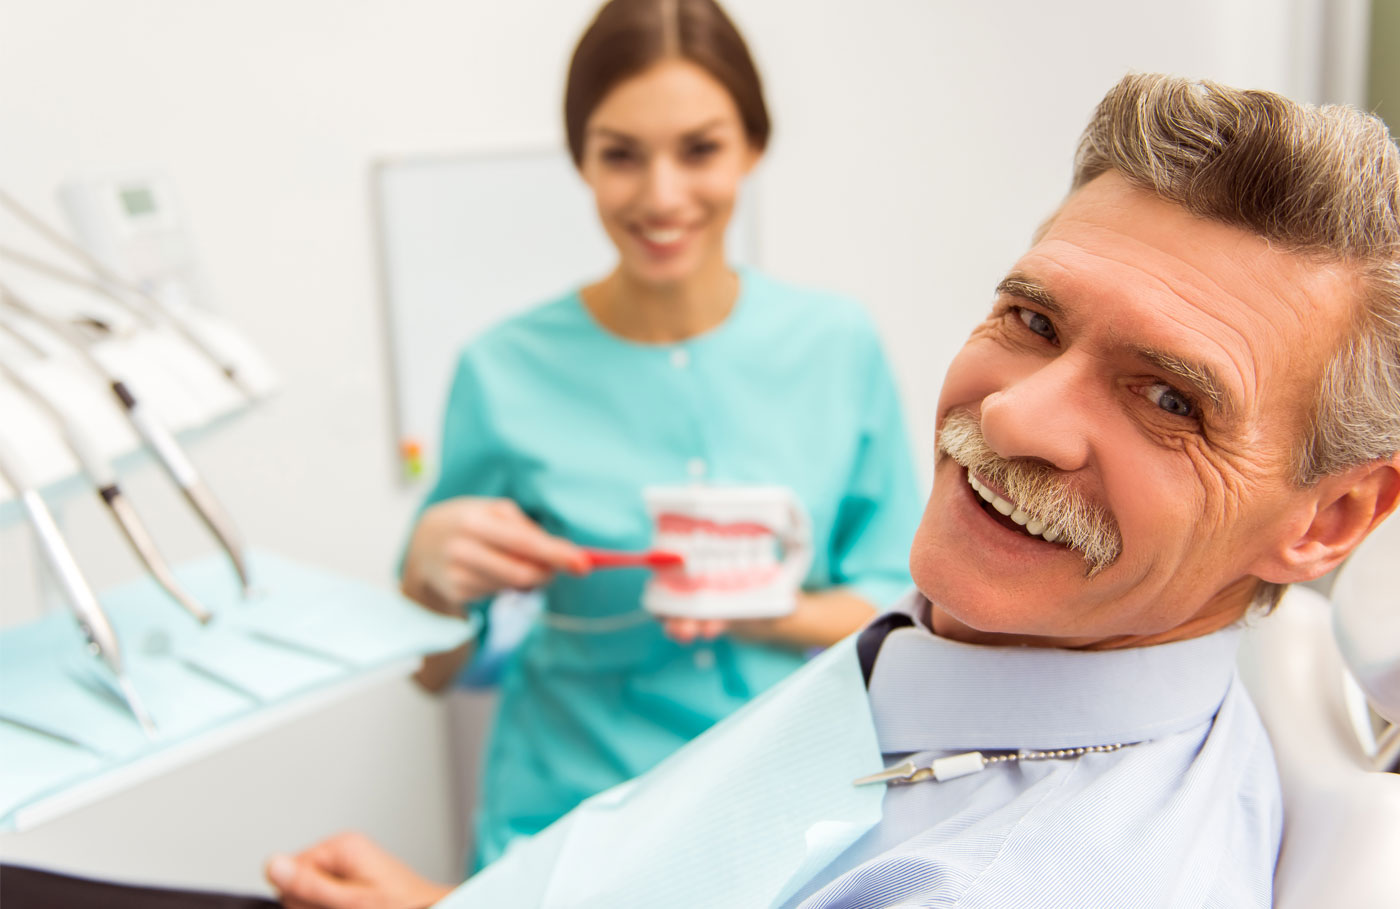 5 Things Your Dentist Wants You To Know—But Will Never Tell You